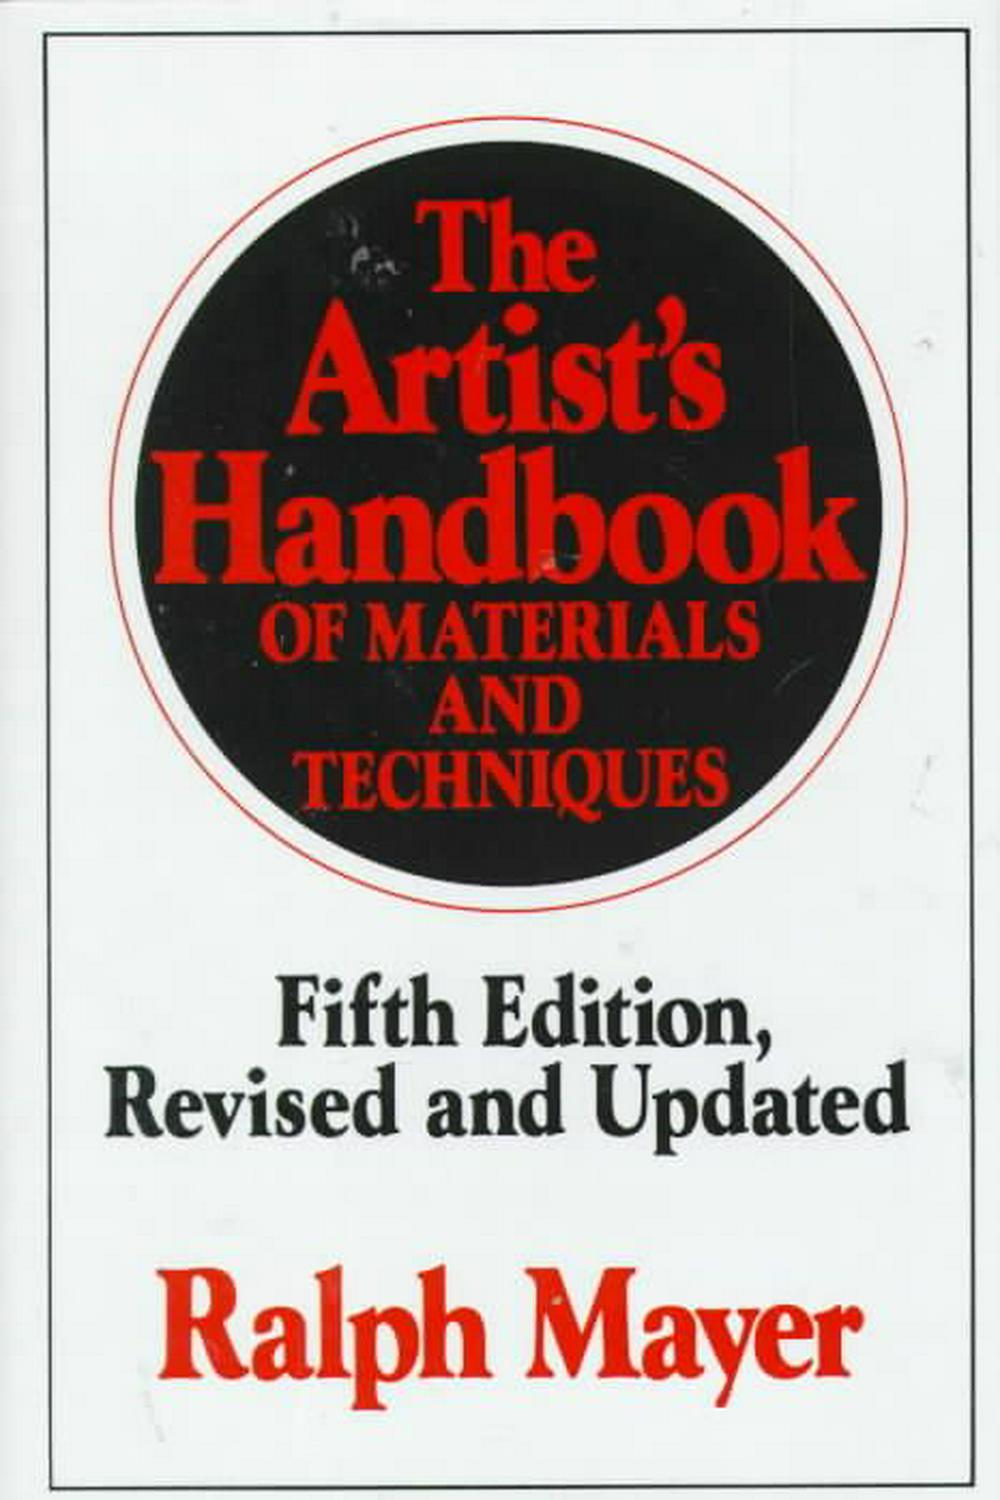 The Artist's Handbook of Materials and Techniques by Ralph Mayer, ISBN: 9780670837014